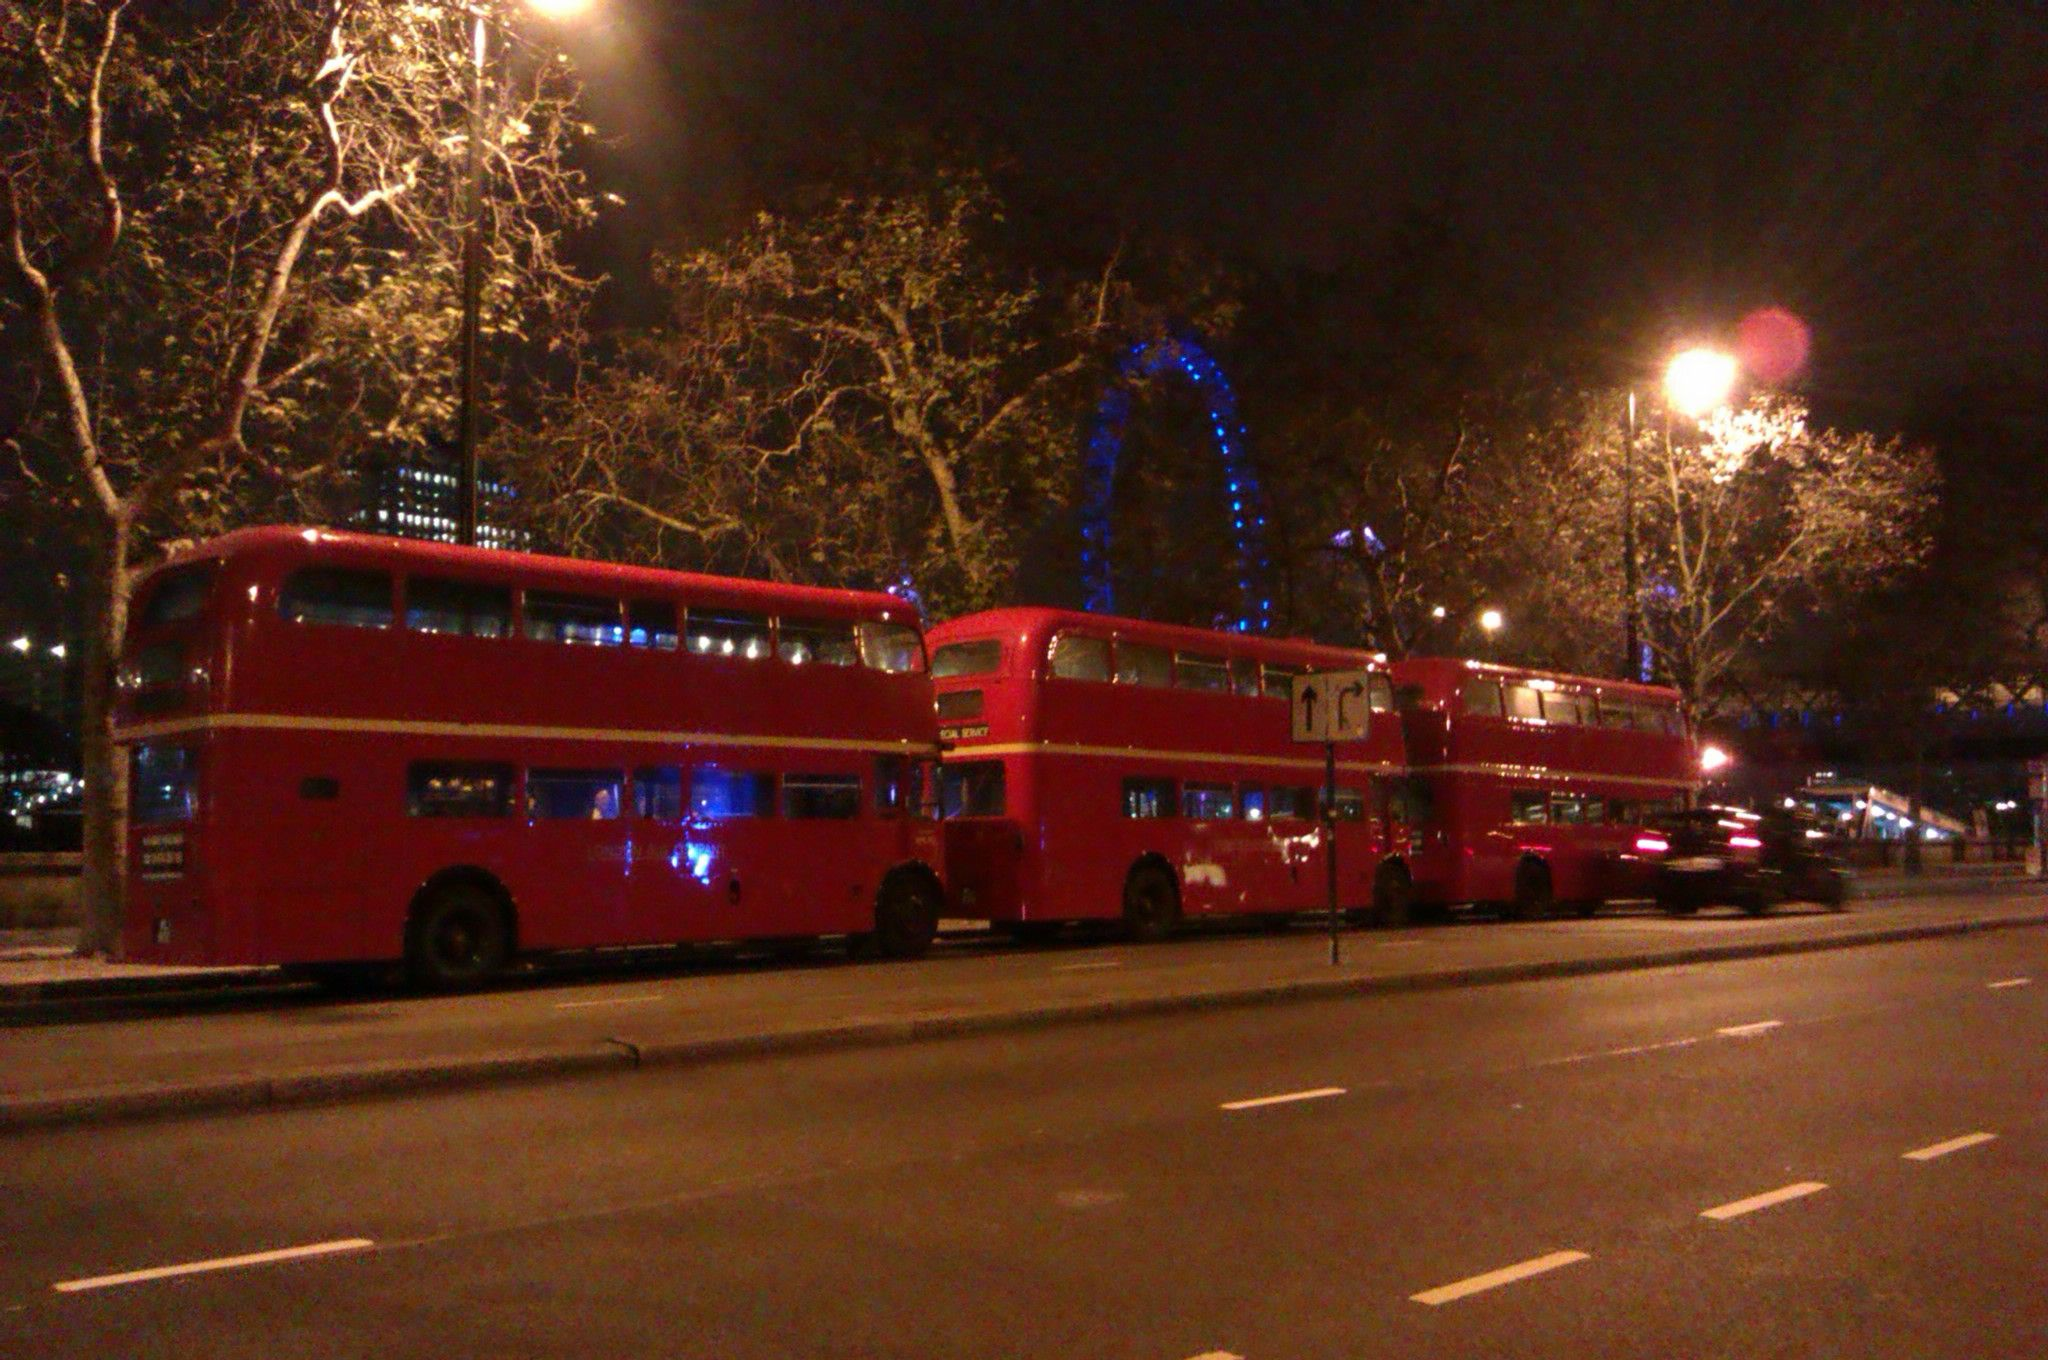 London red buses at night